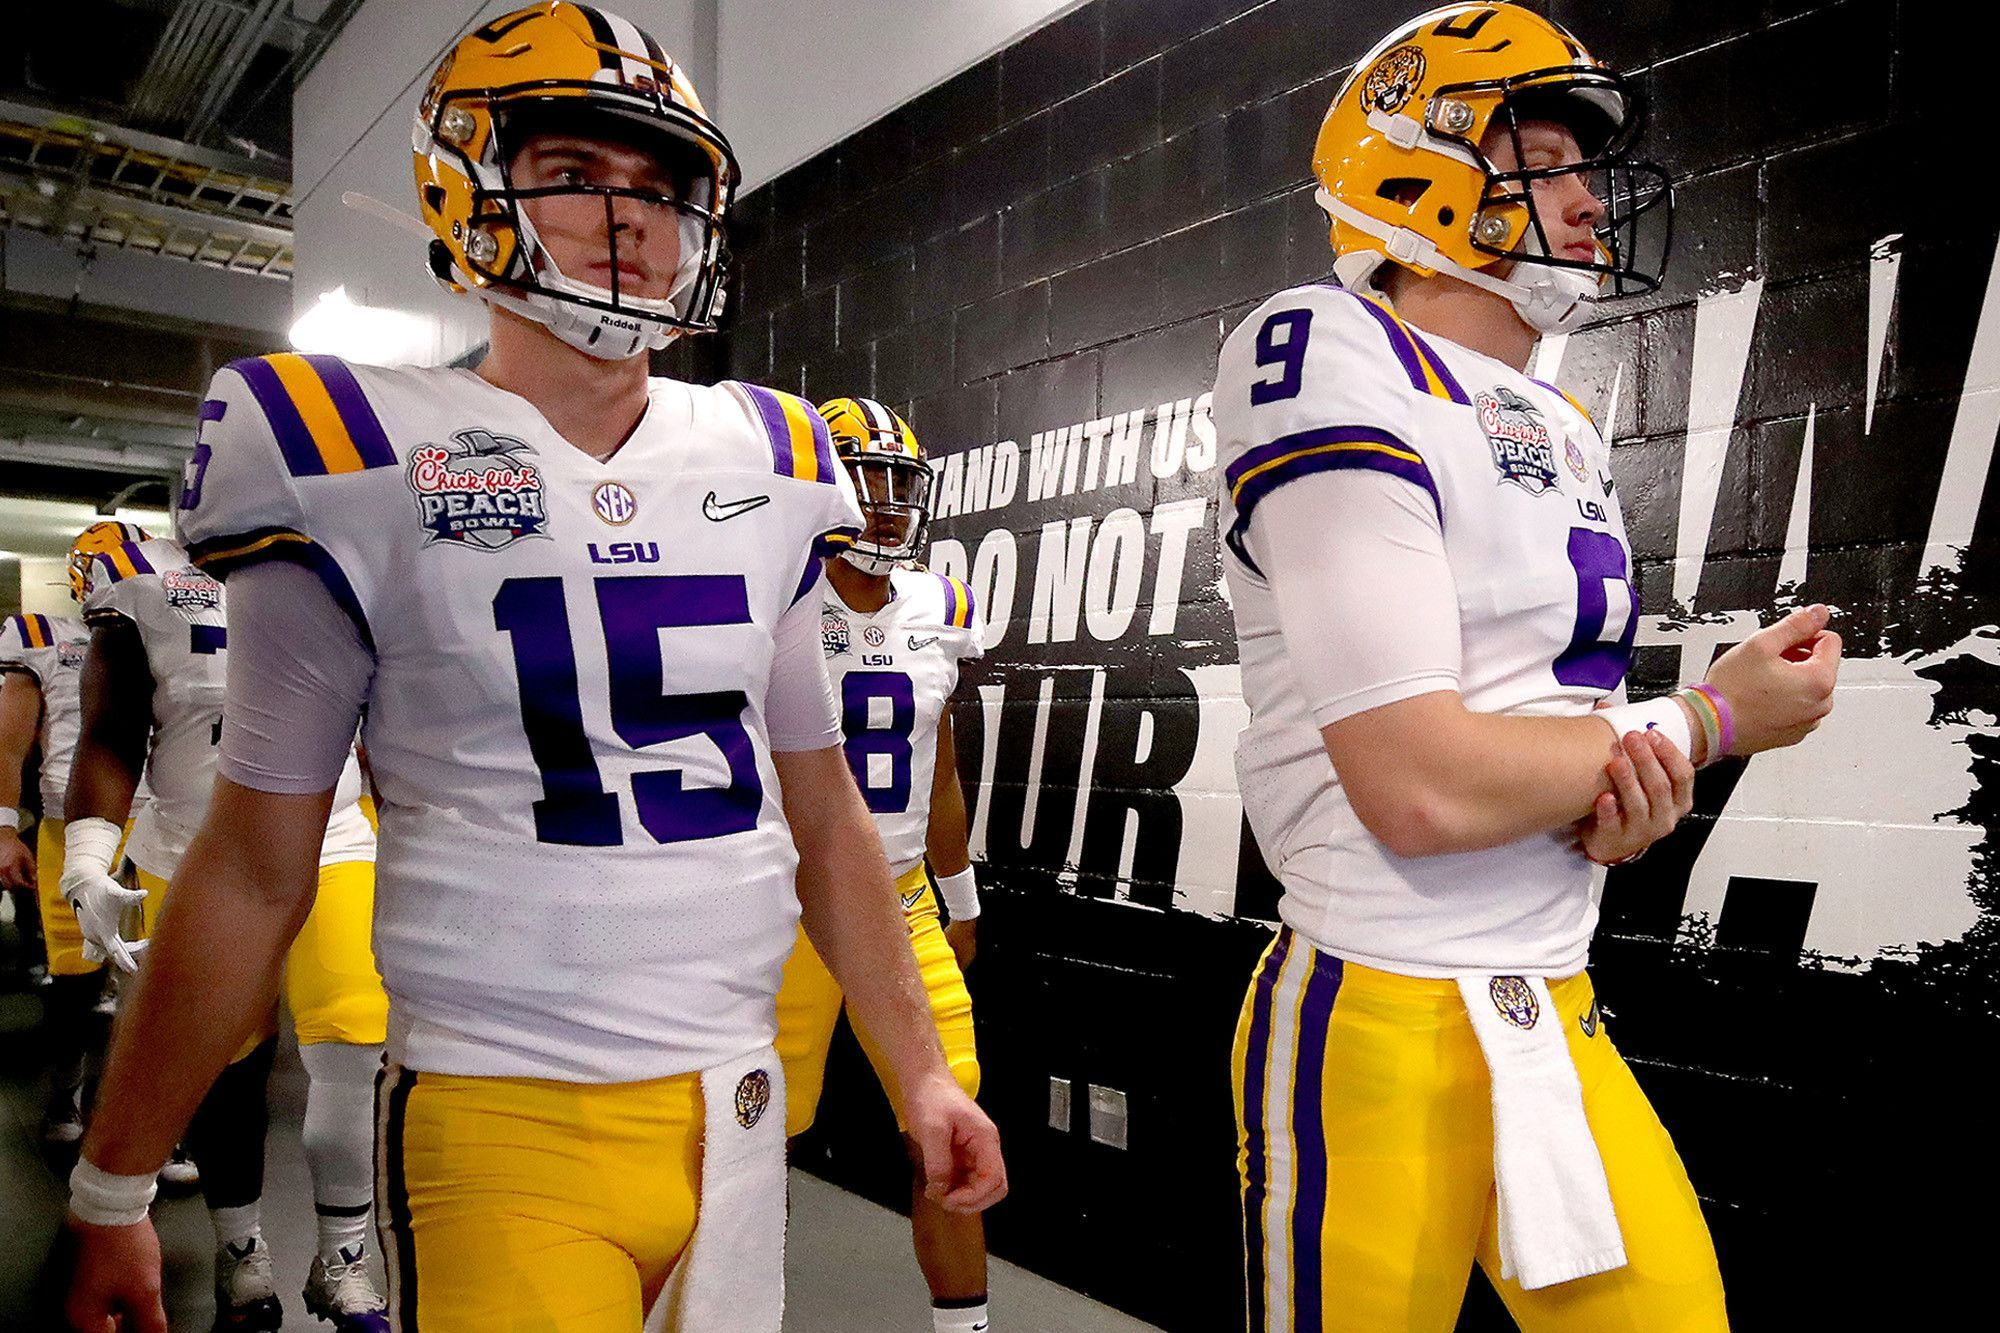 New Party Member Tags Dance Dancing Football College Football Ncaa Cfb Lsu Ncaa Football Lsu Tigers Lsu Footbal College Football Season Lsu Football Lsu Fans